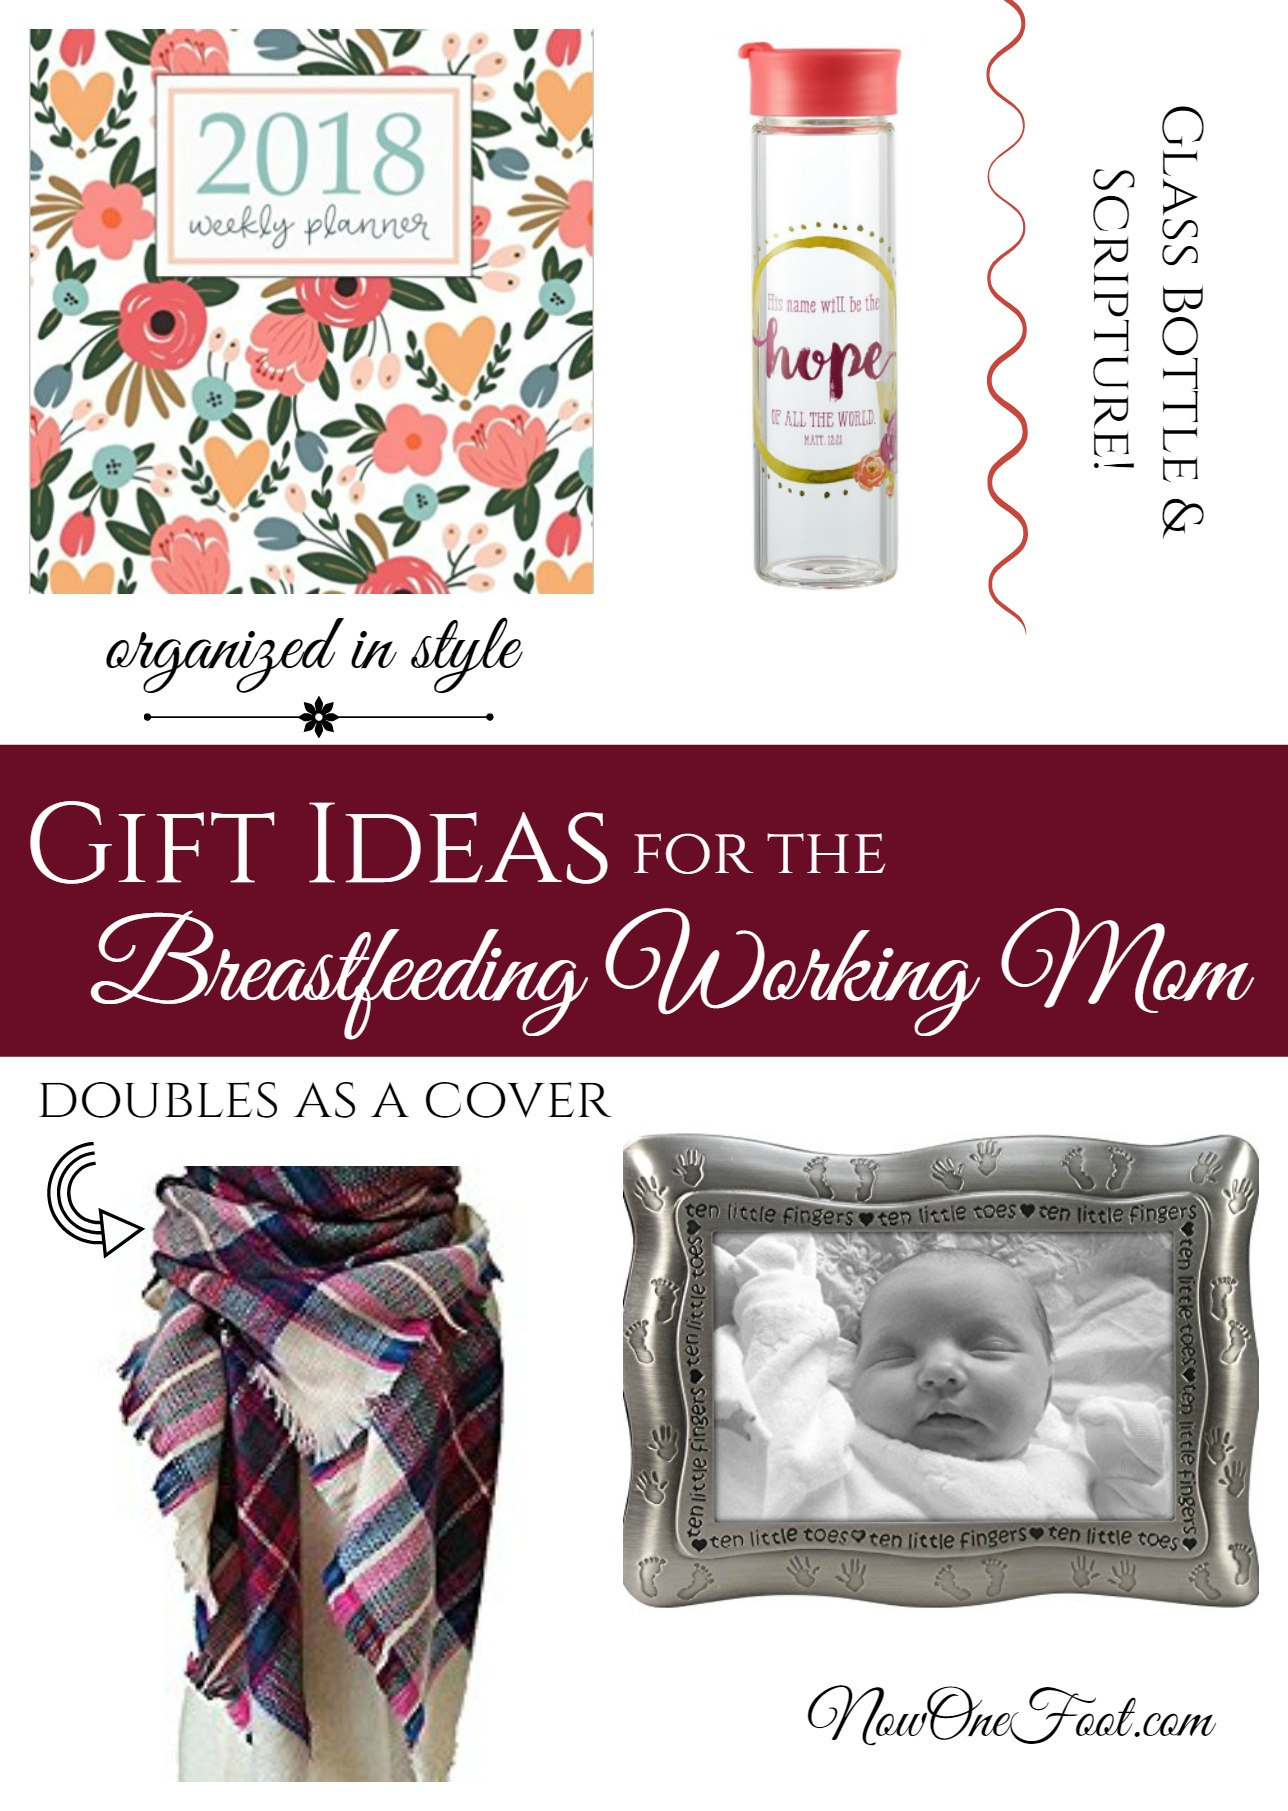 Breastfeeding Working Mom Gifts | breastfeeding mom gifts